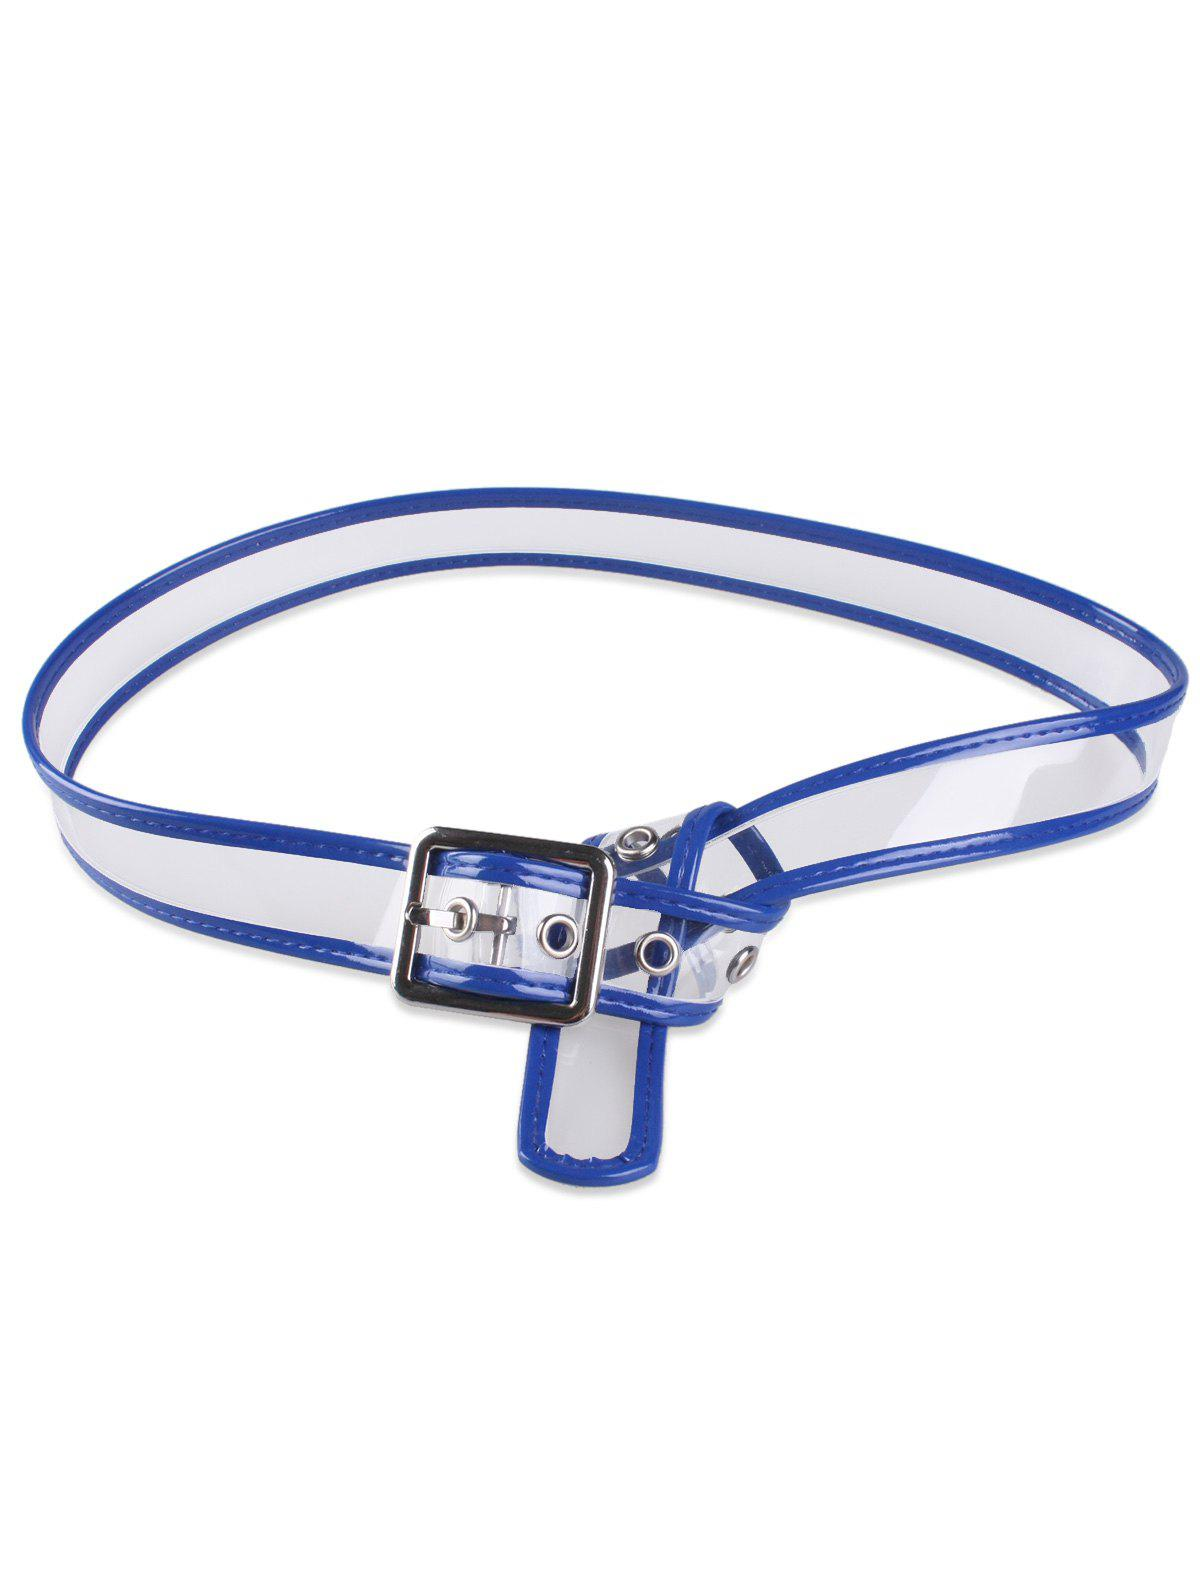 Candy Color Brim Transparent Pin Buckle Belt - Bleu